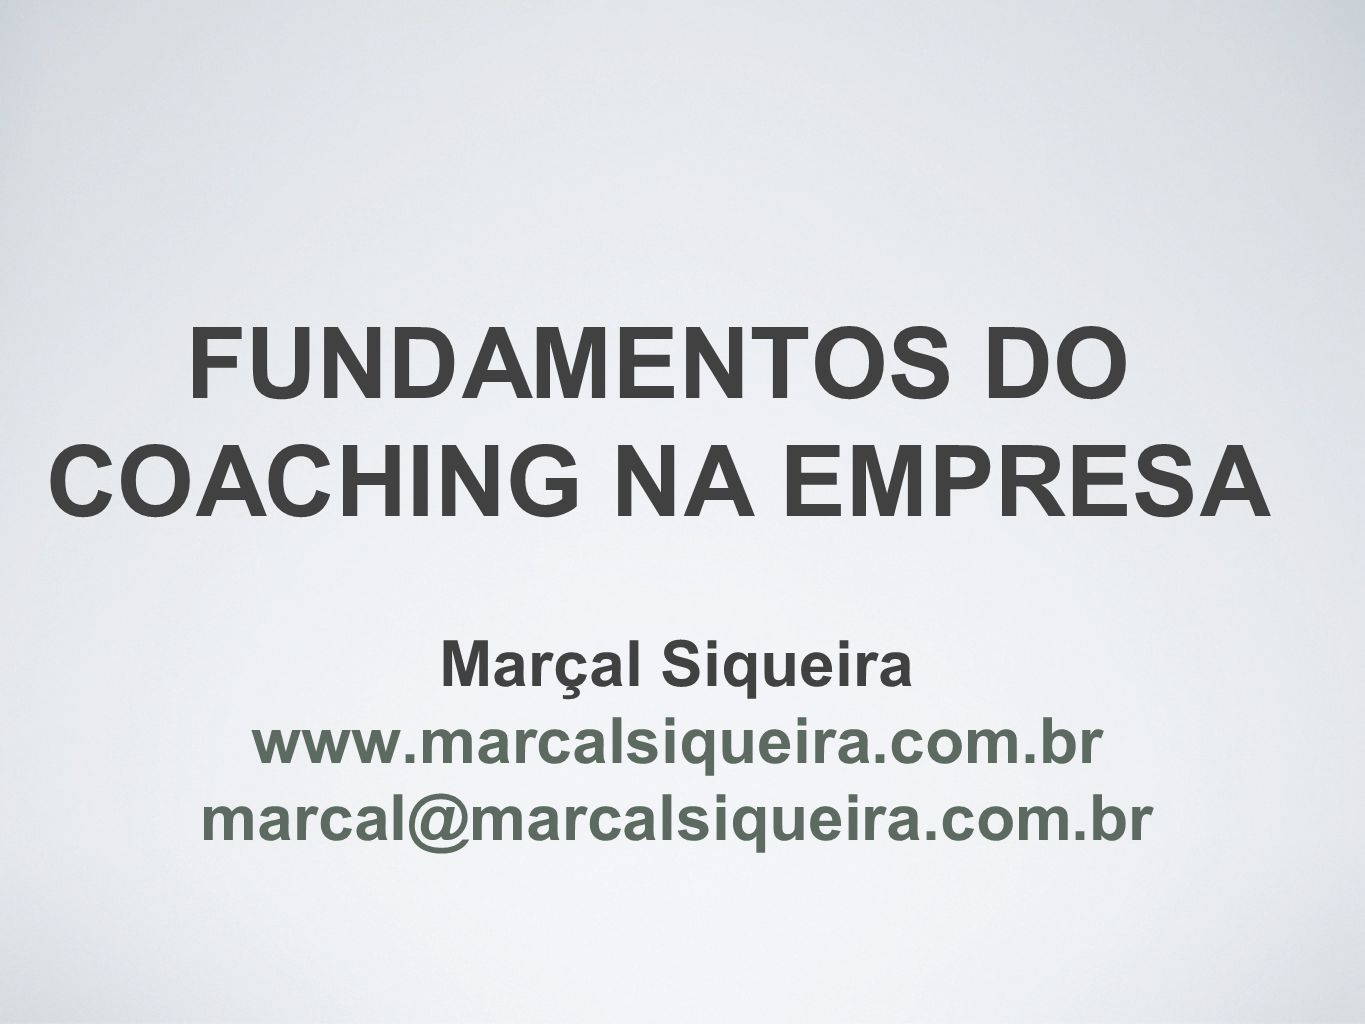 FUNDAMENTOS DO COACHING NA EMPRESA